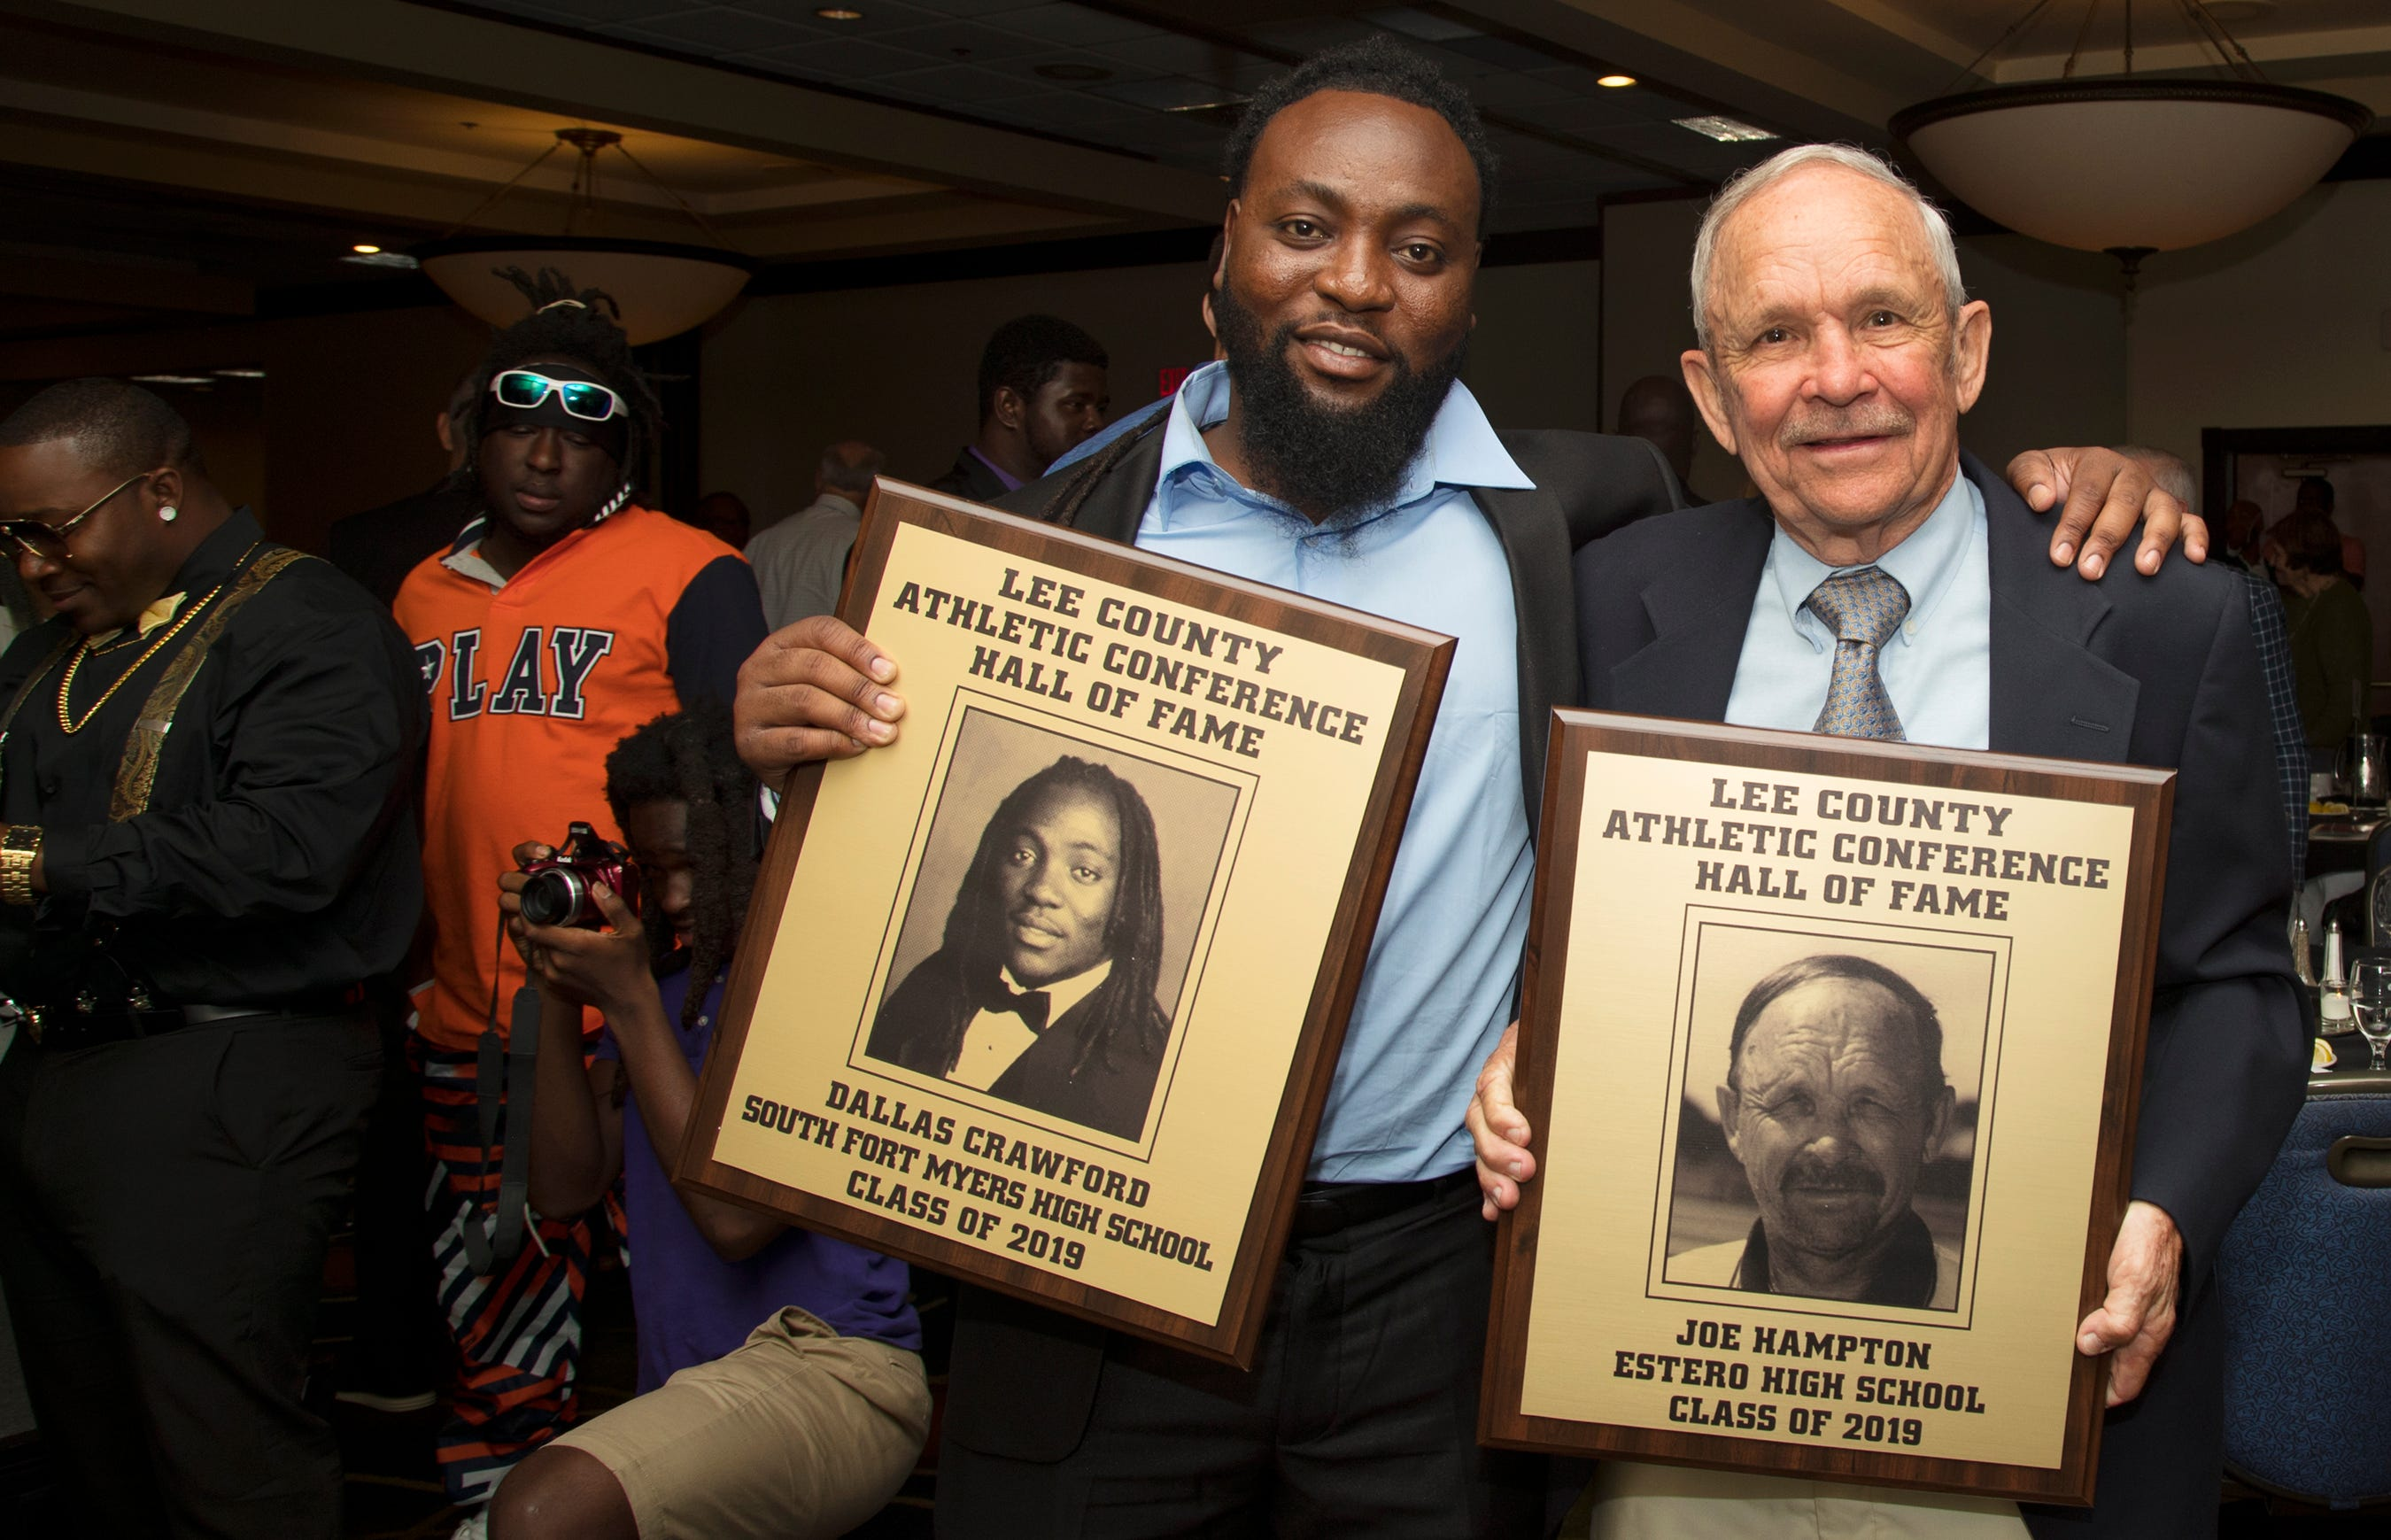 Dallas Crawford, left, a 2011 South Fort Myers High School graduate, and Joe Hampton, a former football coach at Estero High School, are inducted into the Lee County Athletic Conference Hall of Fame on Thursday in Fort Myers. Crawford played football at South.